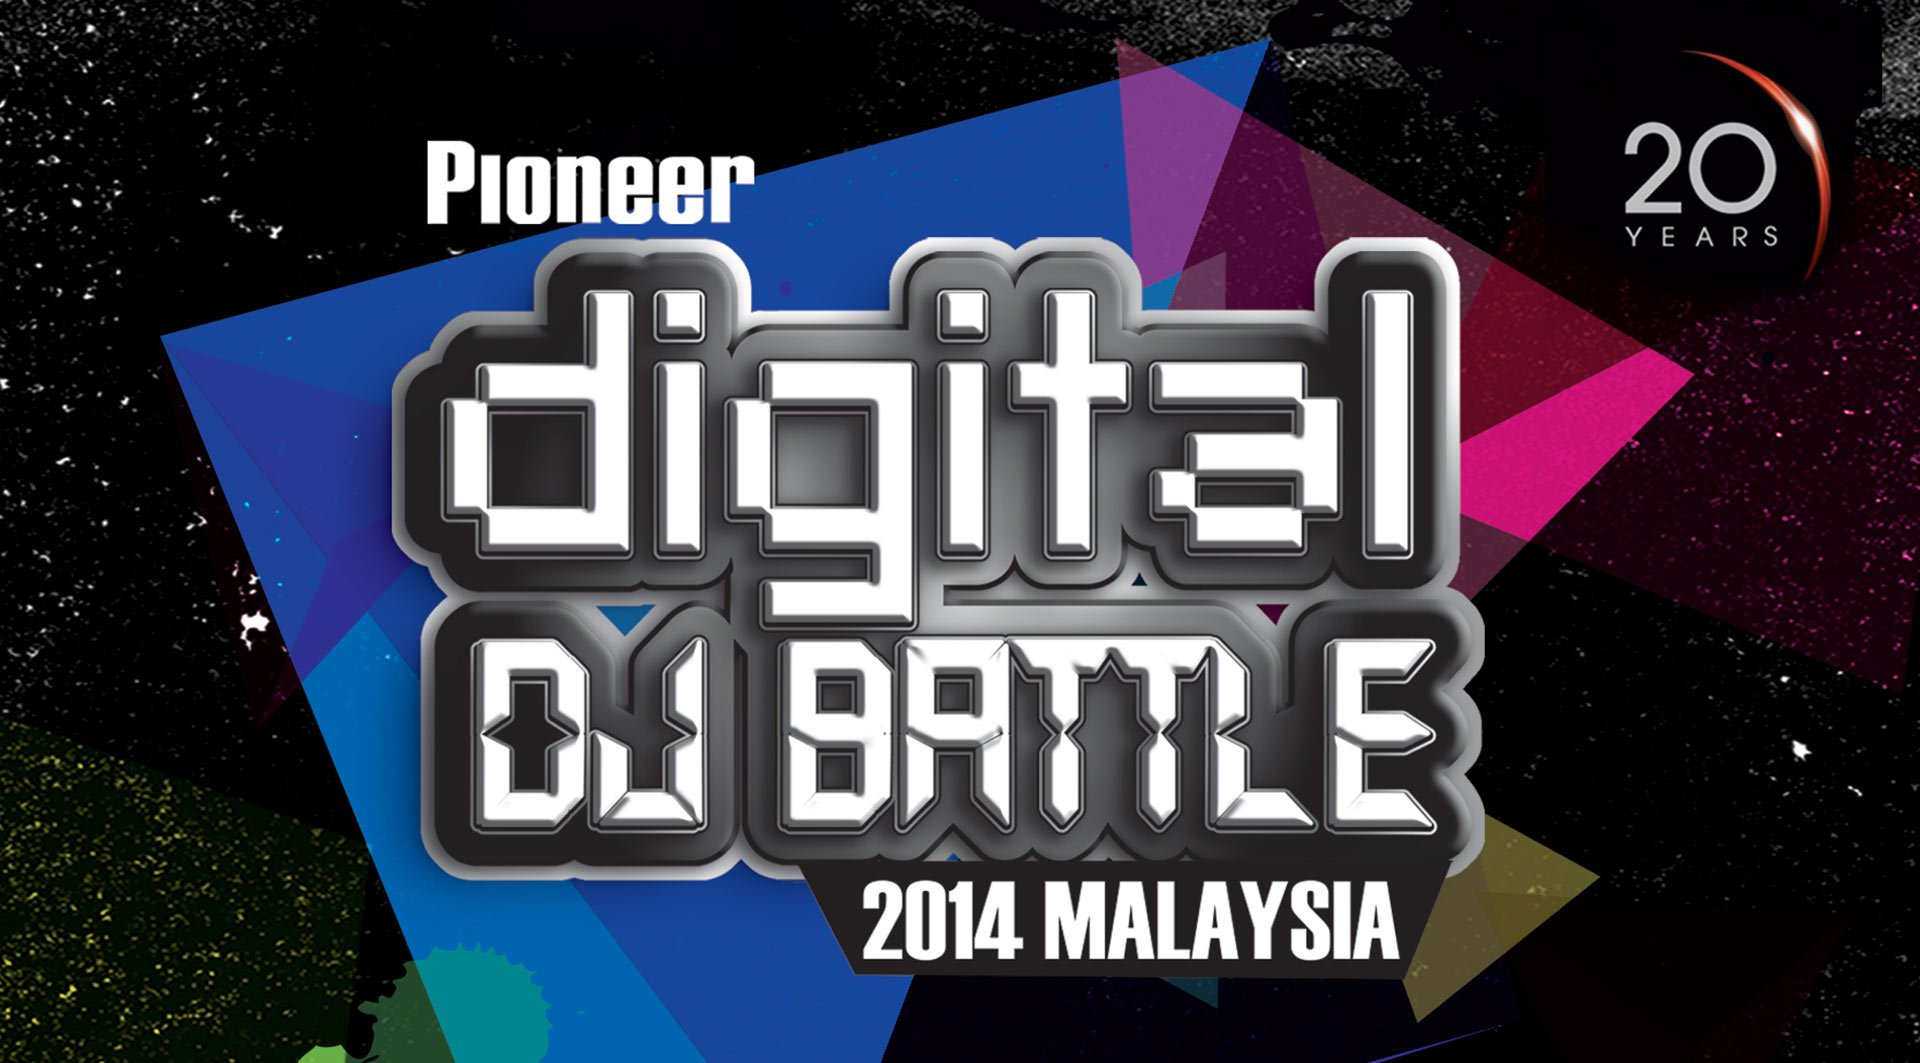 Pioneer Digital DJ Battle 2014: Multiple Contenders. One Champion. A Party to Remember.